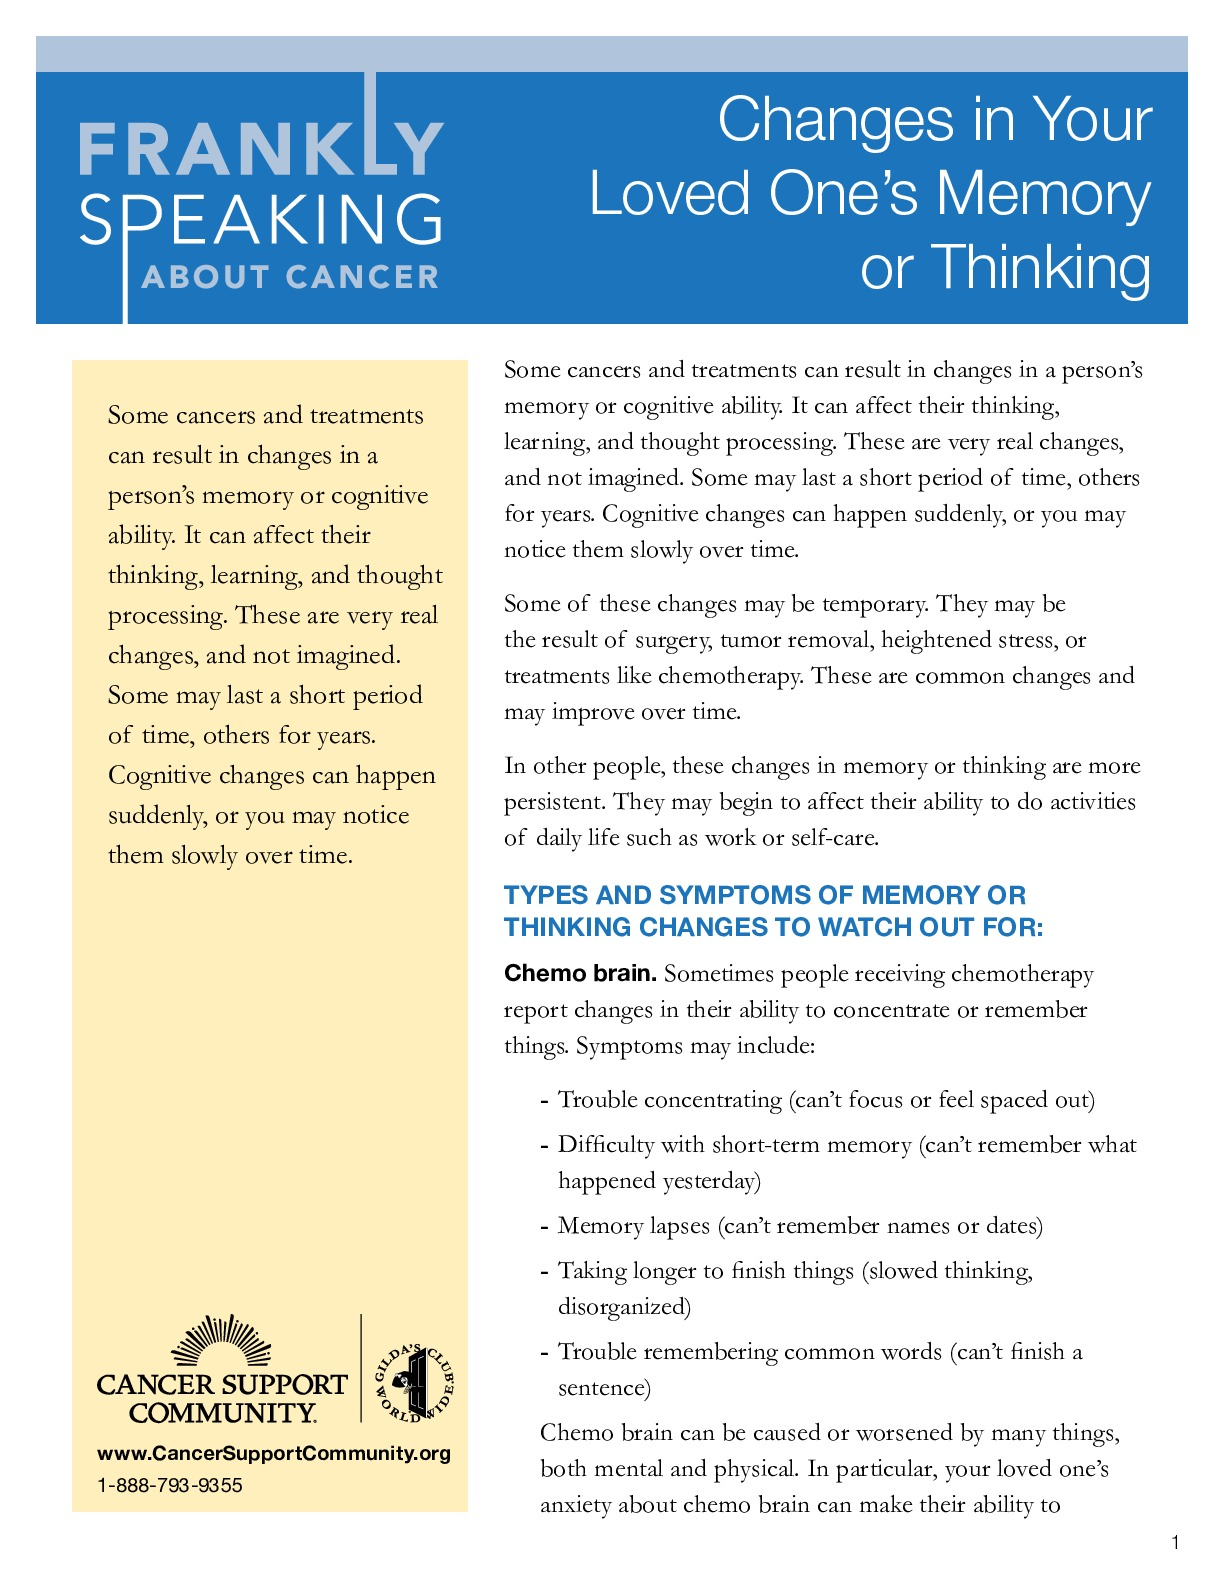 Changes in Your Loved Ones Memory Thinking